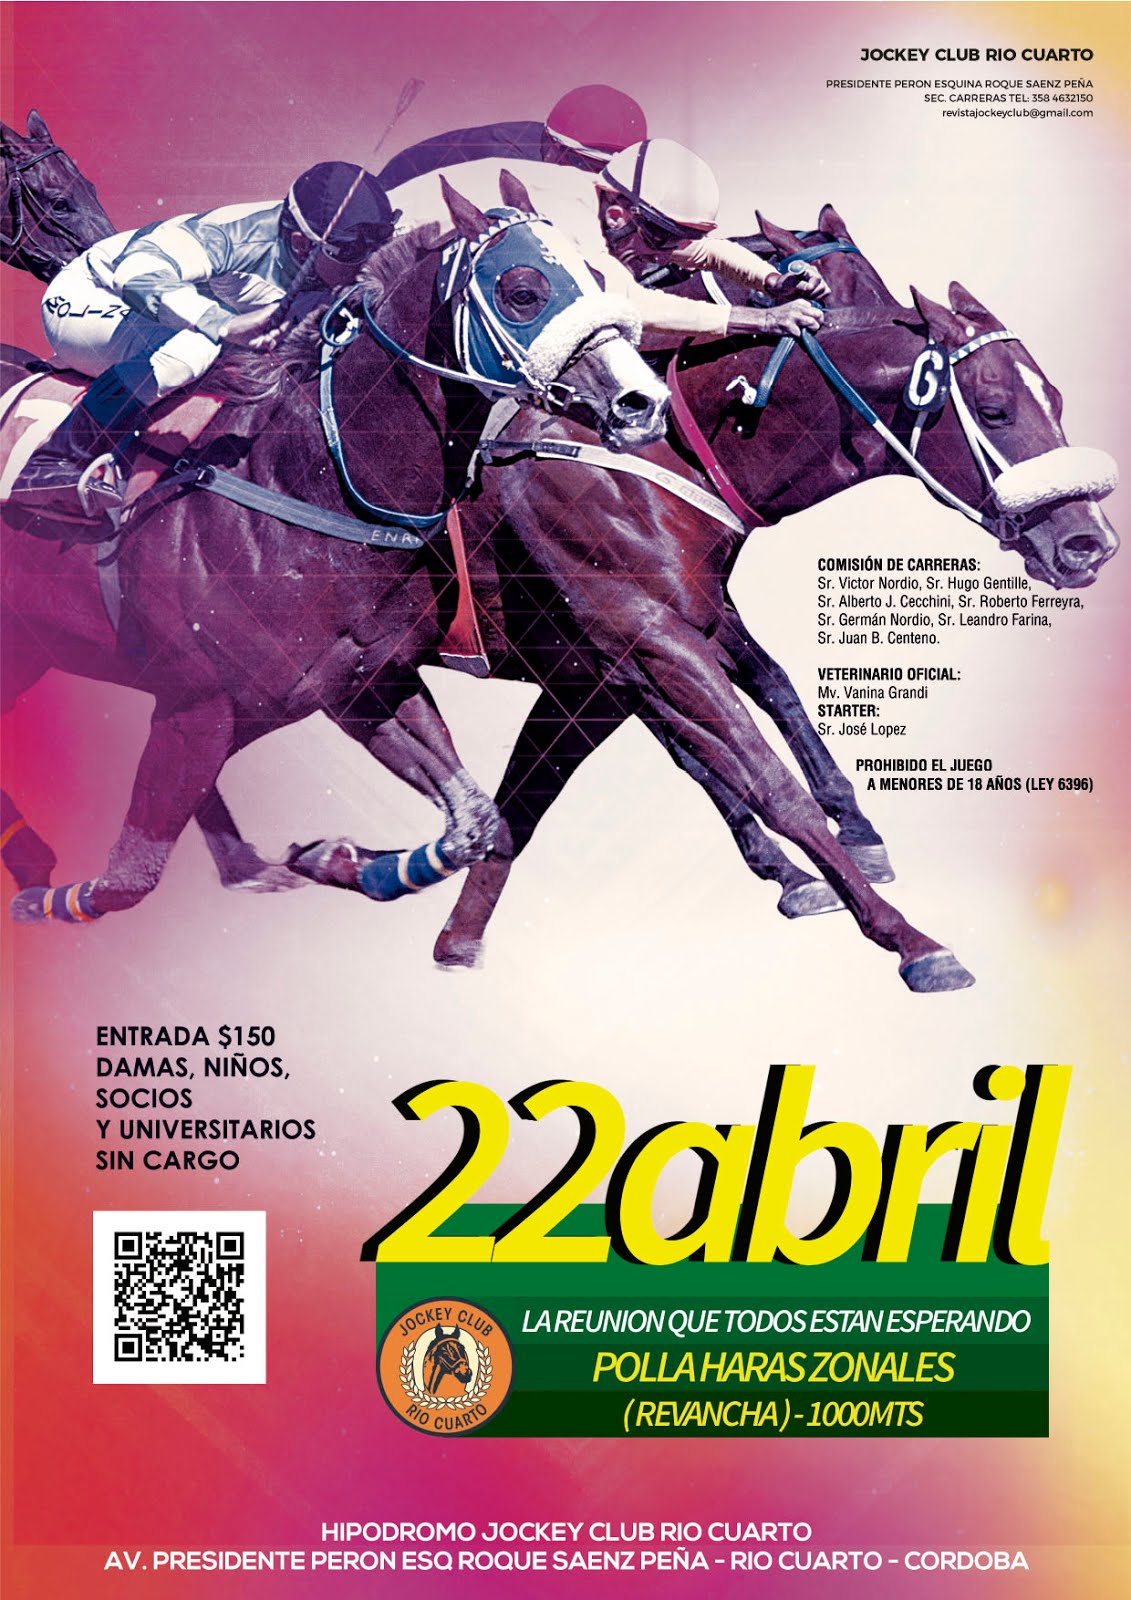 Programa de Carreras - Abril - Jockey Club Río Cuarto